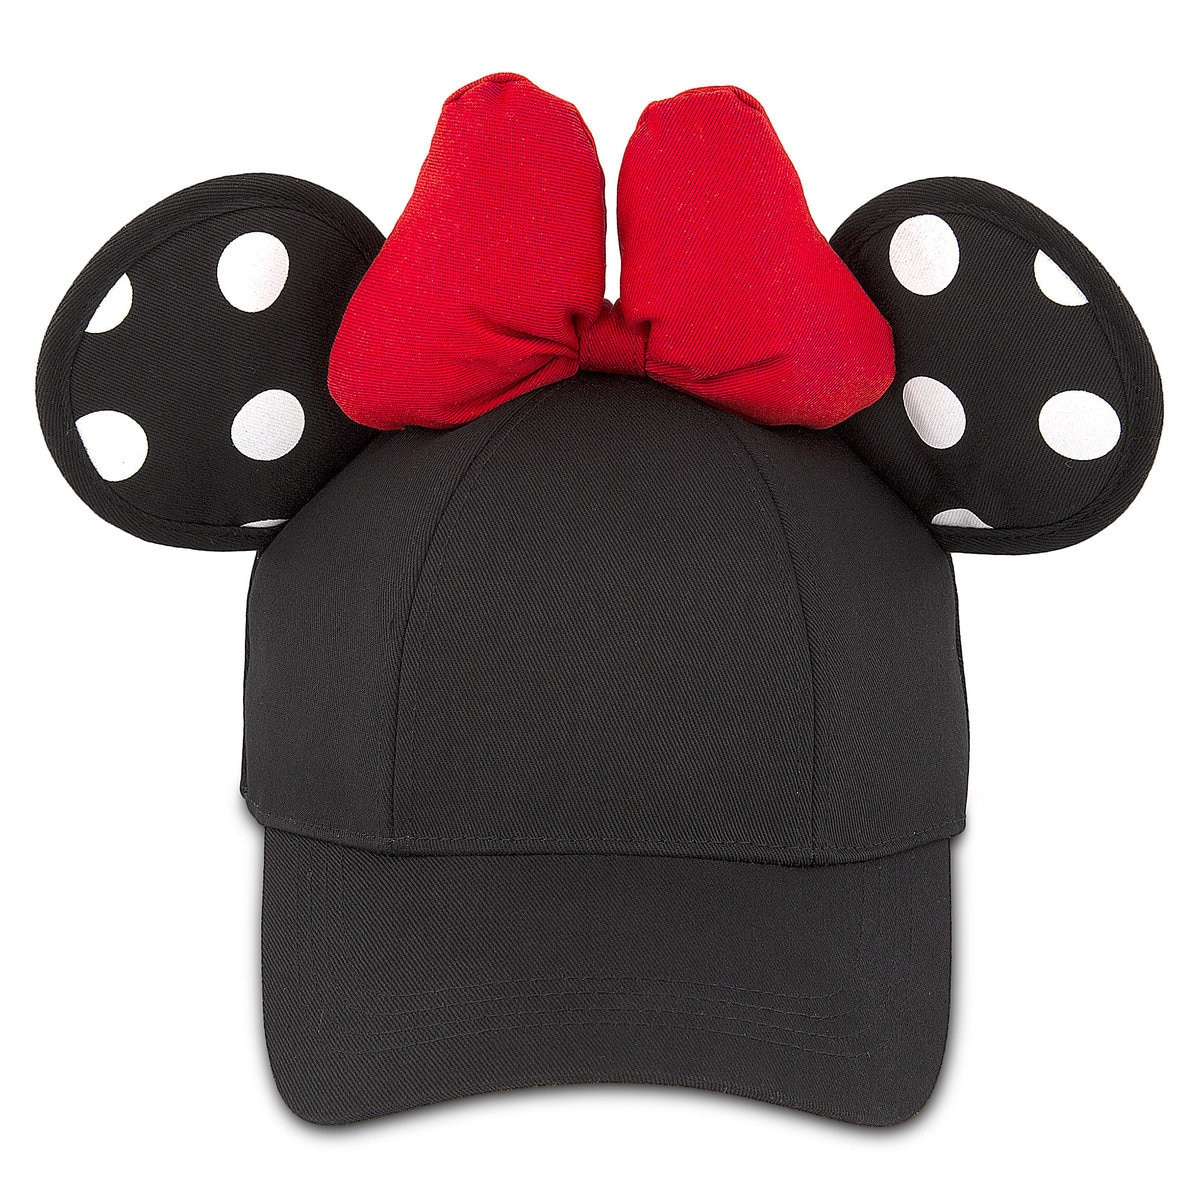 57dc56bc86241d Product Image of Minnie Mouse Polka Dot Ears Baseball Cap for Adults # 1